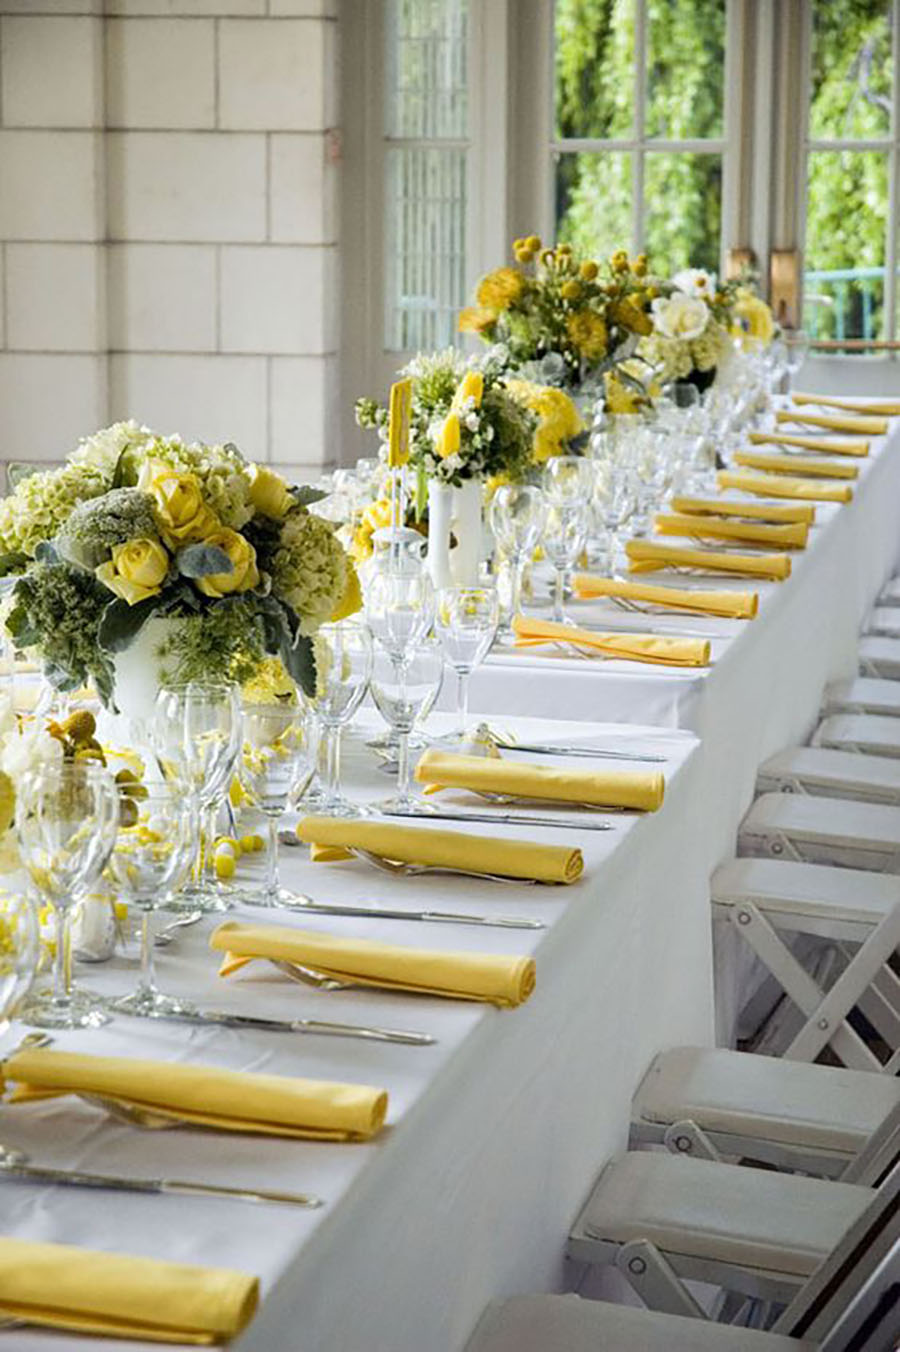 spring and easter tablescapes - yellow